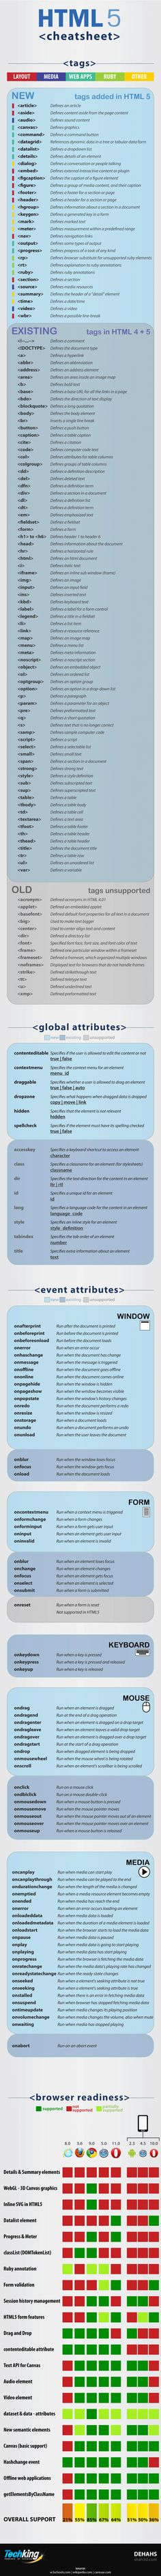 HTML Cheat Sheet : List of HTML Tags